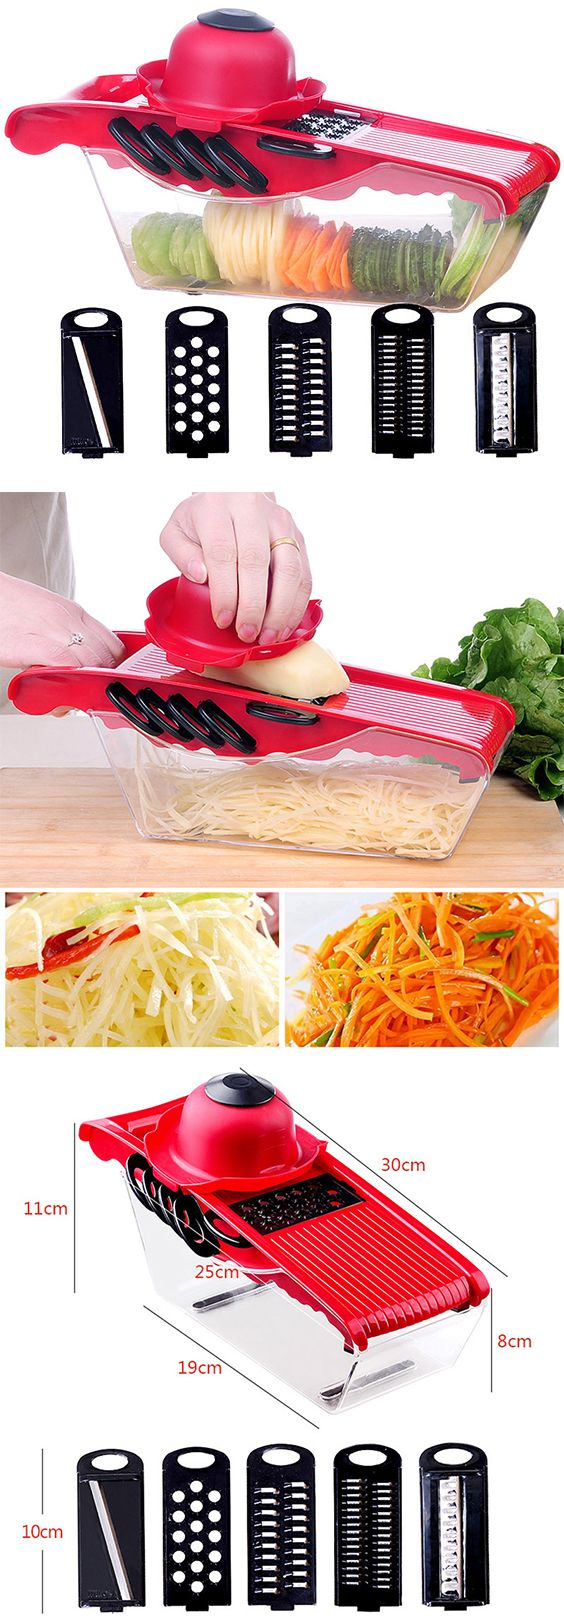 - 5 interchangeable blades are made from stainless steel which can durable to use and you can use them to chop various vegetable or fruits  - A hand guard can prevent you hurting when you chop vegetable or fruits - A transparent container can keep the vegetable or fruits clean  - Using it can help you save more time when you are cooking